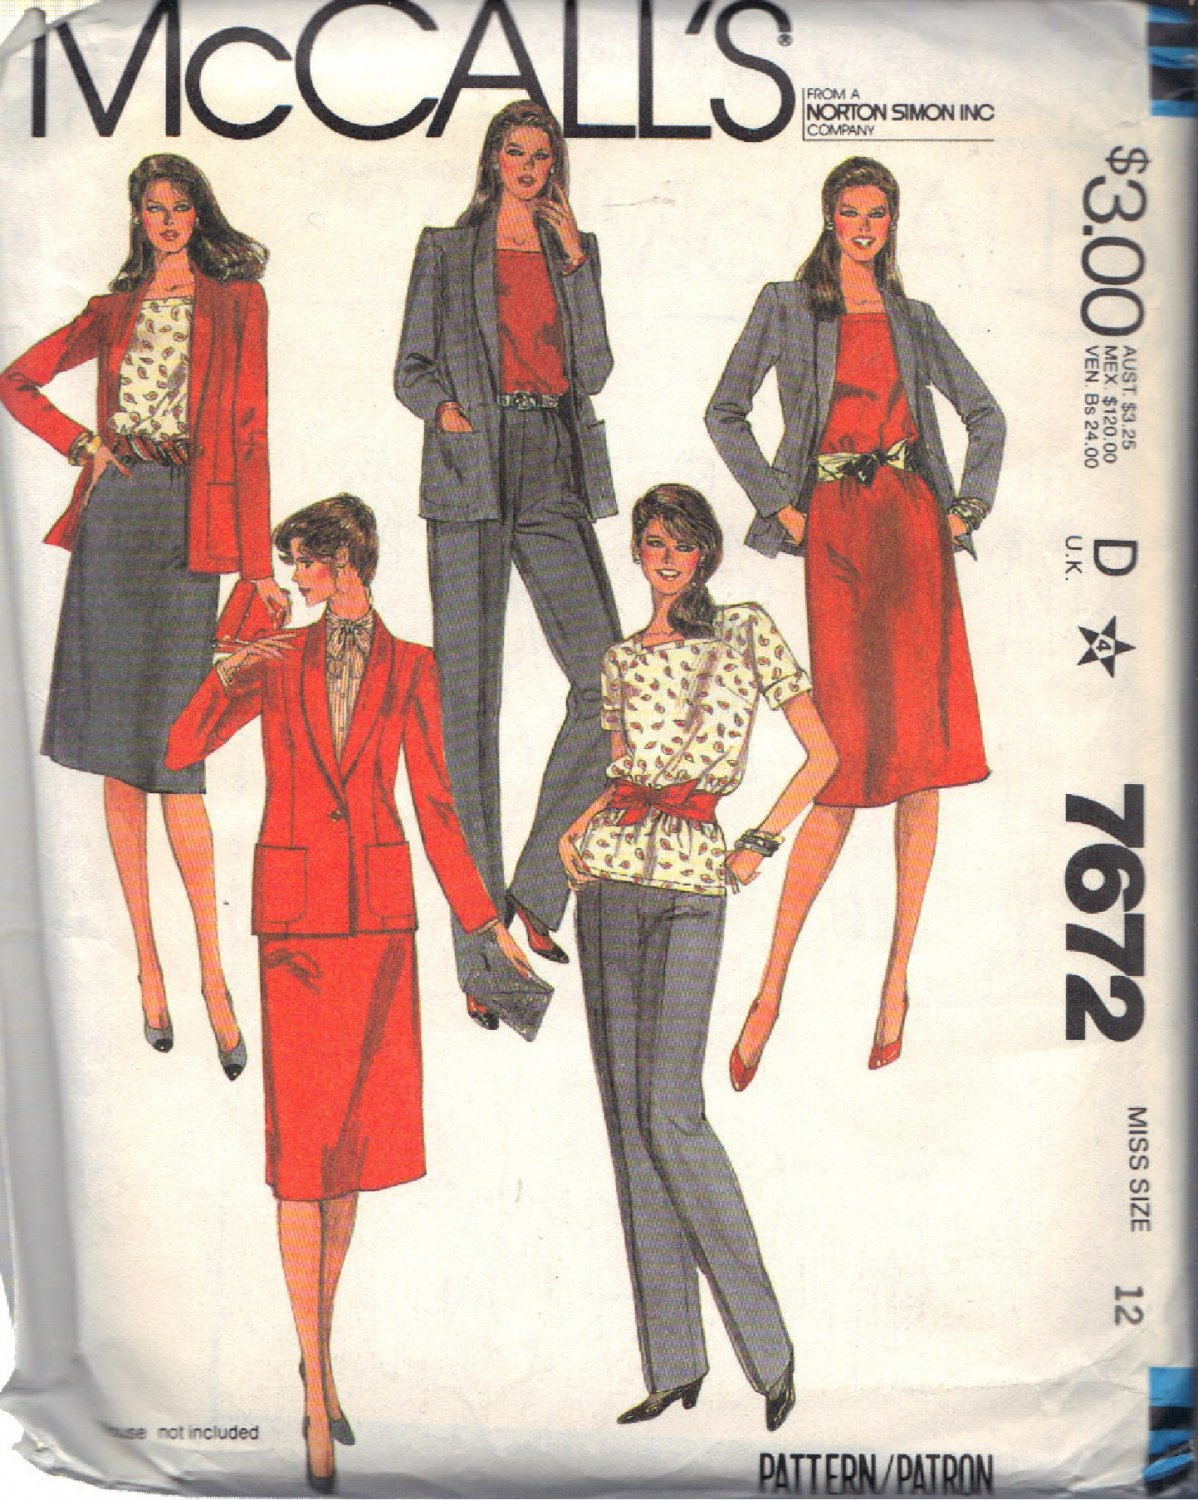 McCALL'S PATTERN 7672 DATED 1981 SIZE 12 MISSES' JACKET TOP SKIRT PANTS UNCUT